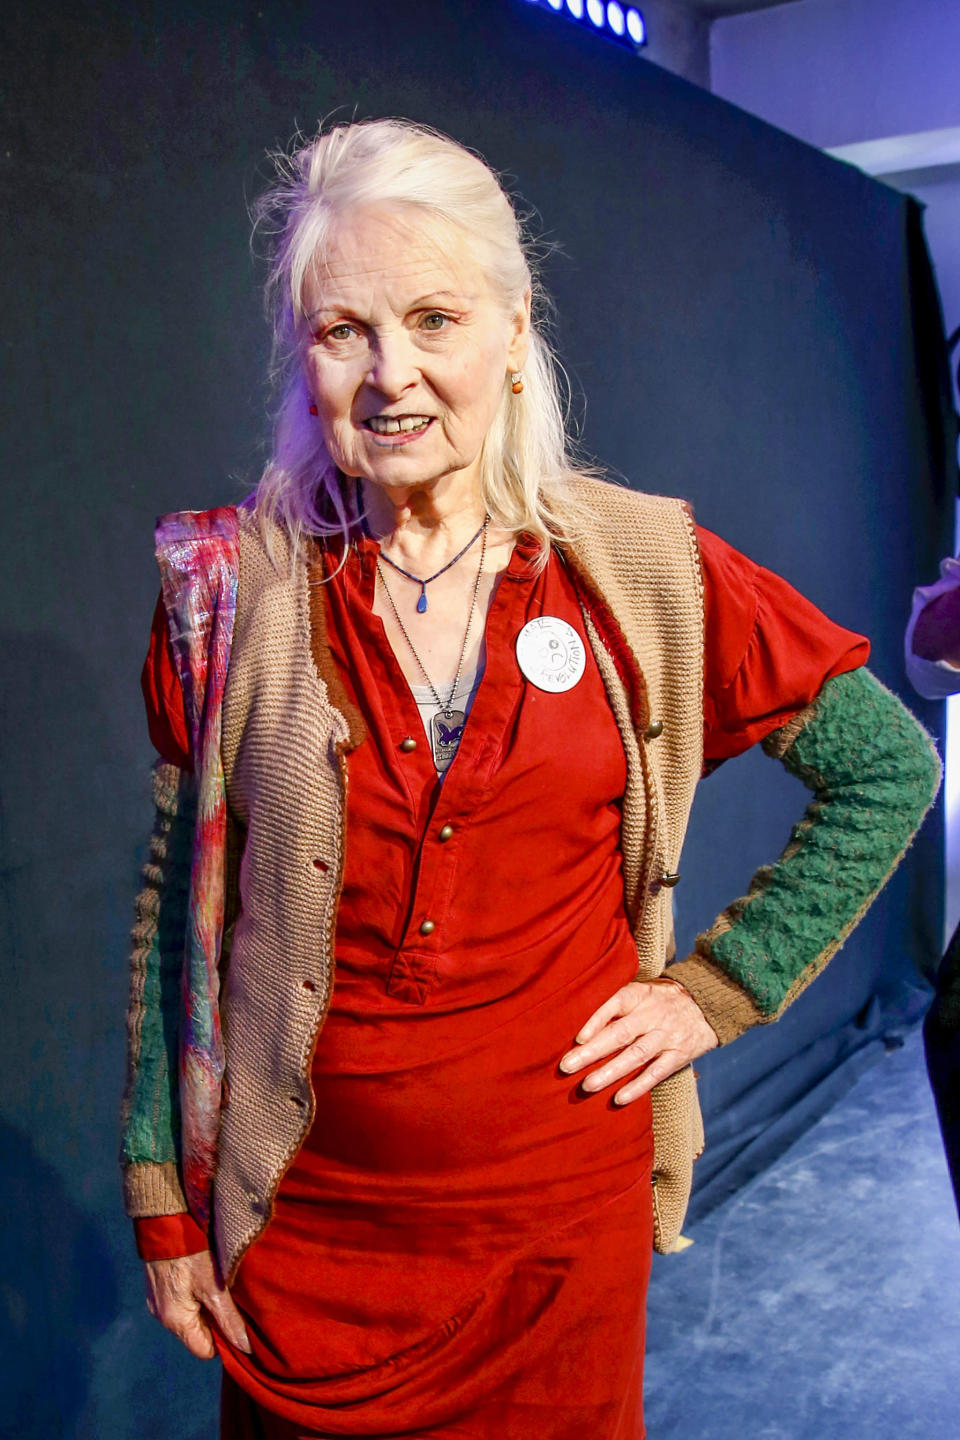 Fashion Designer Vivienne Westwood arrives at the Bread & Butter by Zalando event in 2017 (Photo: Isa Foltin/Getty Images for Zalando)